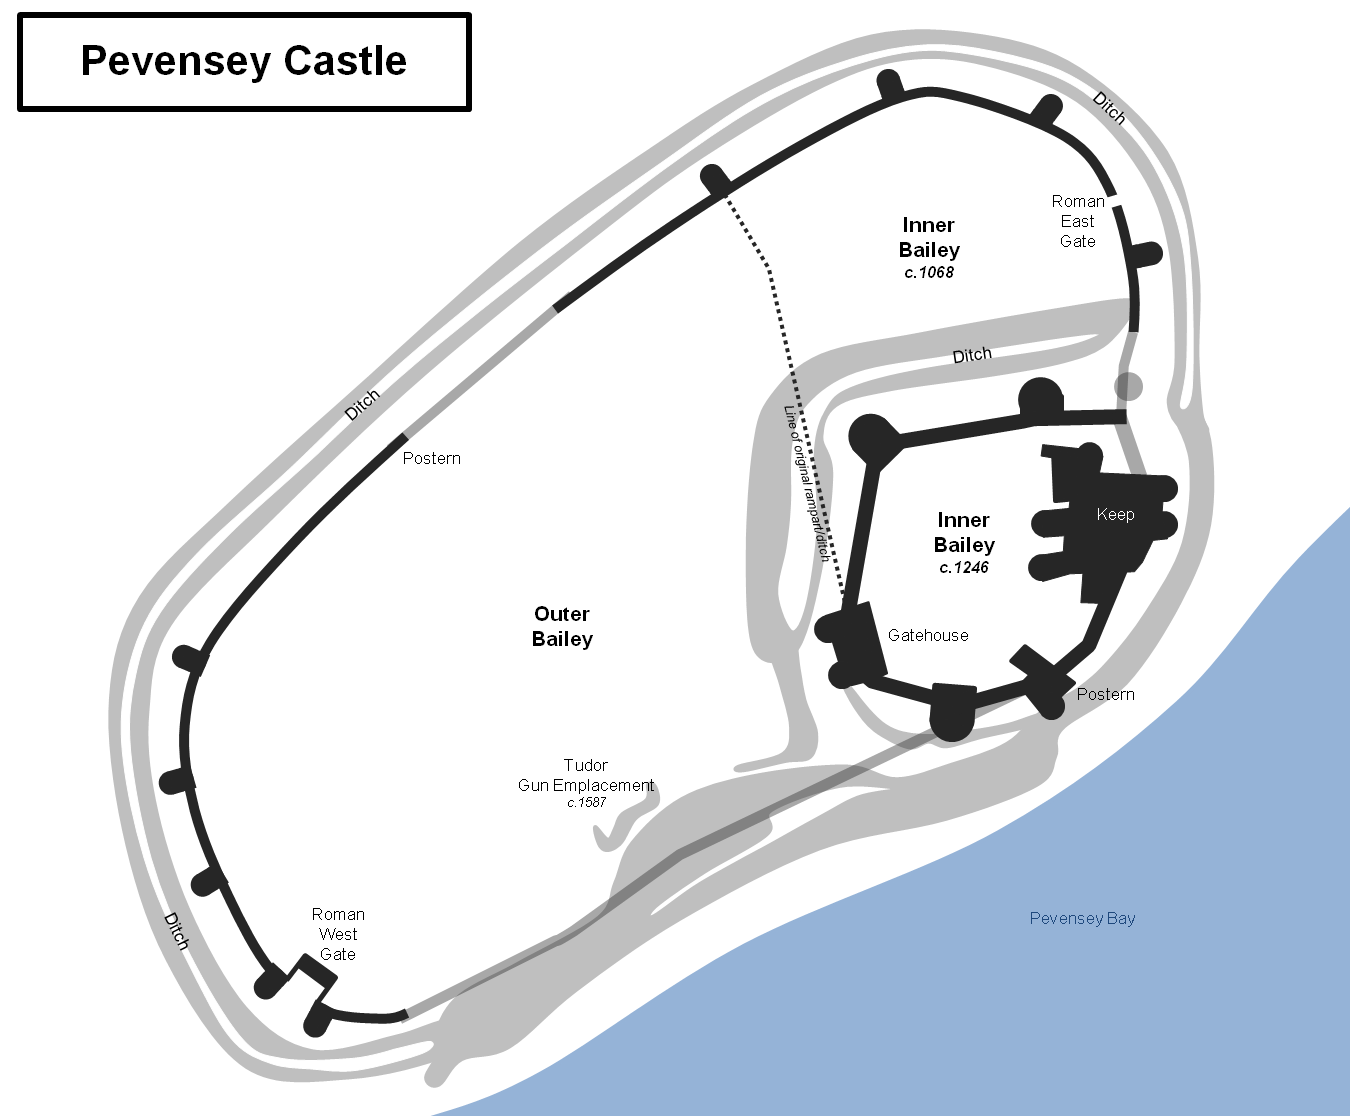 pevensey_castle_plan pevensey castle south east castles, forts and battles